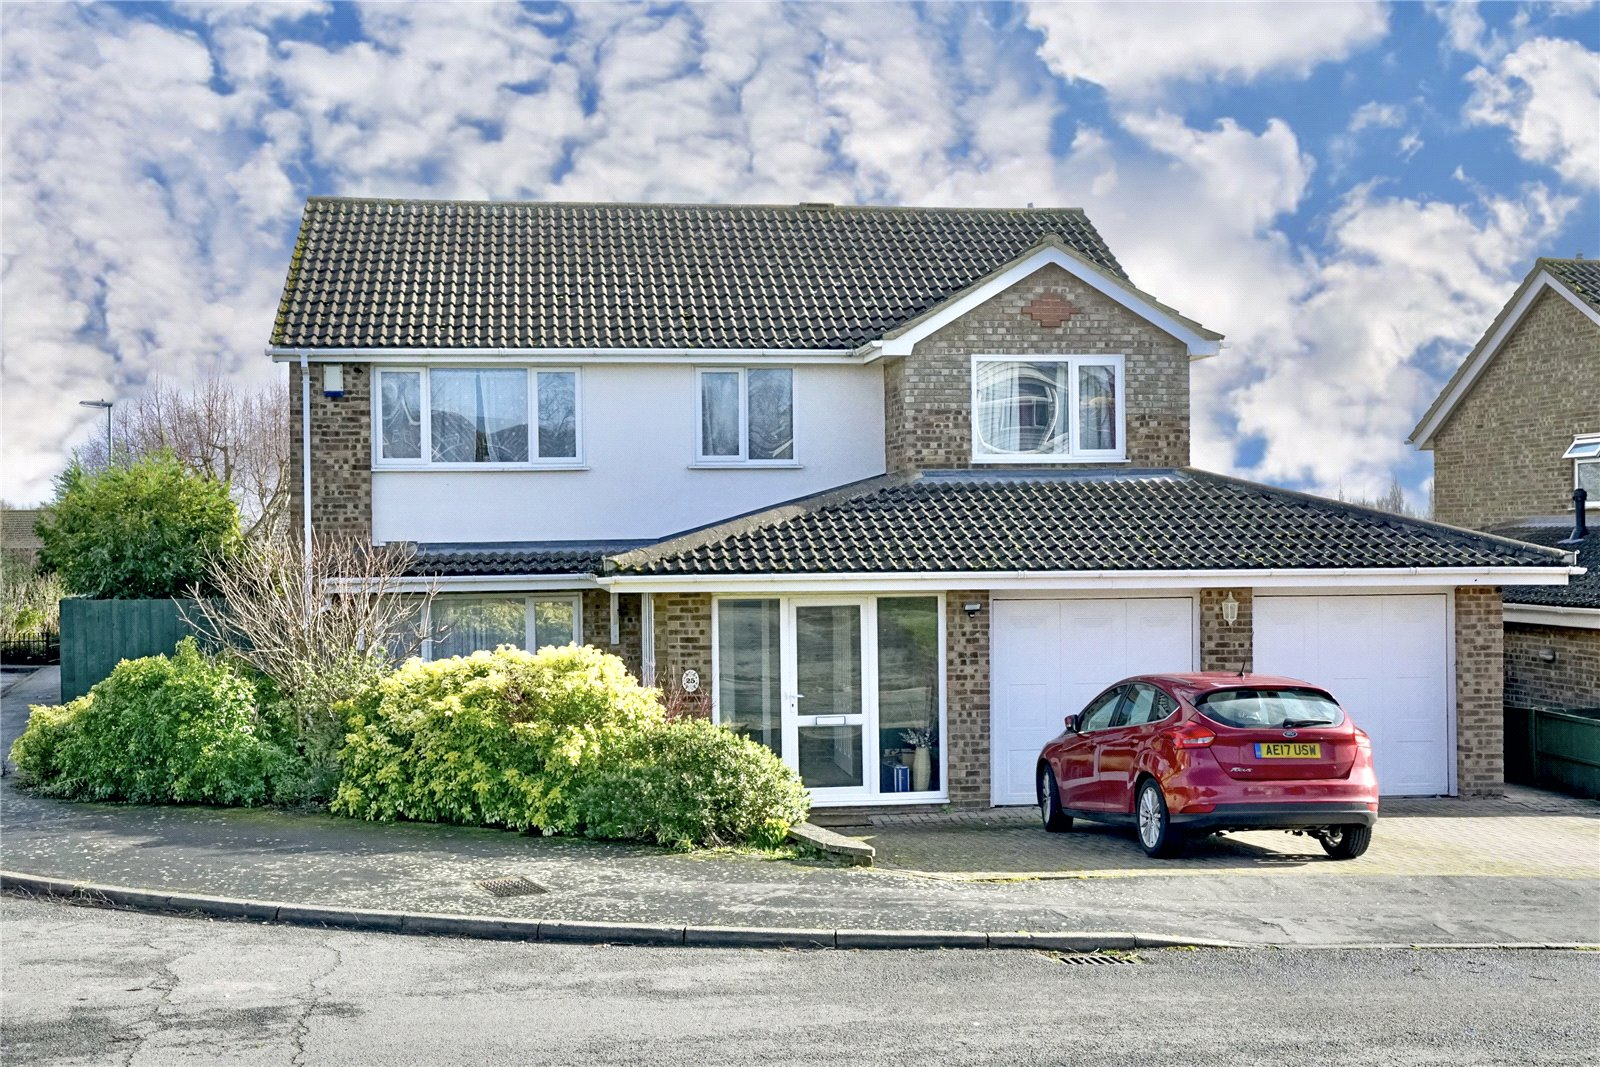 4 bed house for sale in Eaton Ford  - Property Image 2